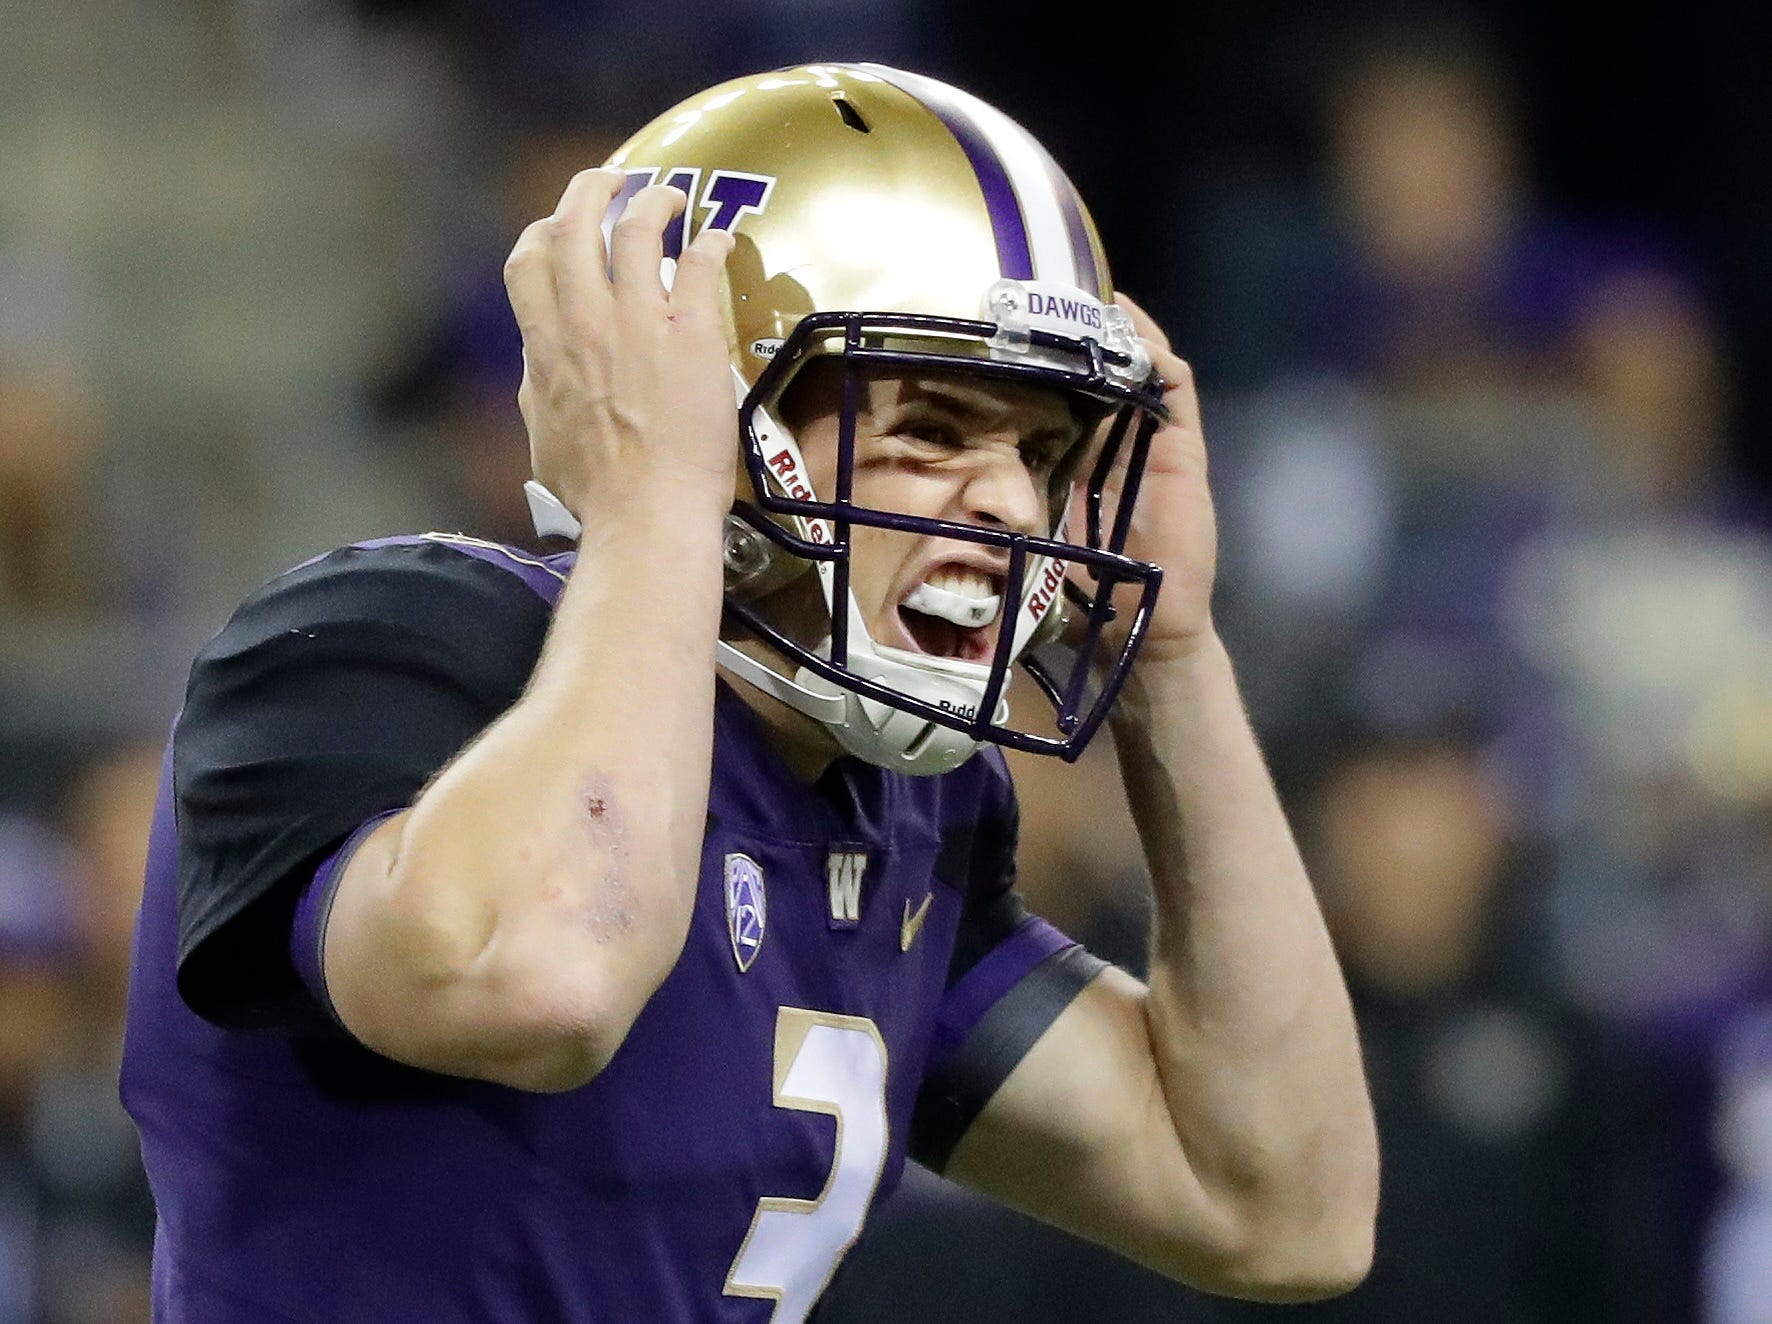 Washington quarterback Jake Browning calls to his team at the line of scrimmage during the first half of an NCAA college football game against Arizona State, Saturday, Sept. 22, 2018, in Seattle.